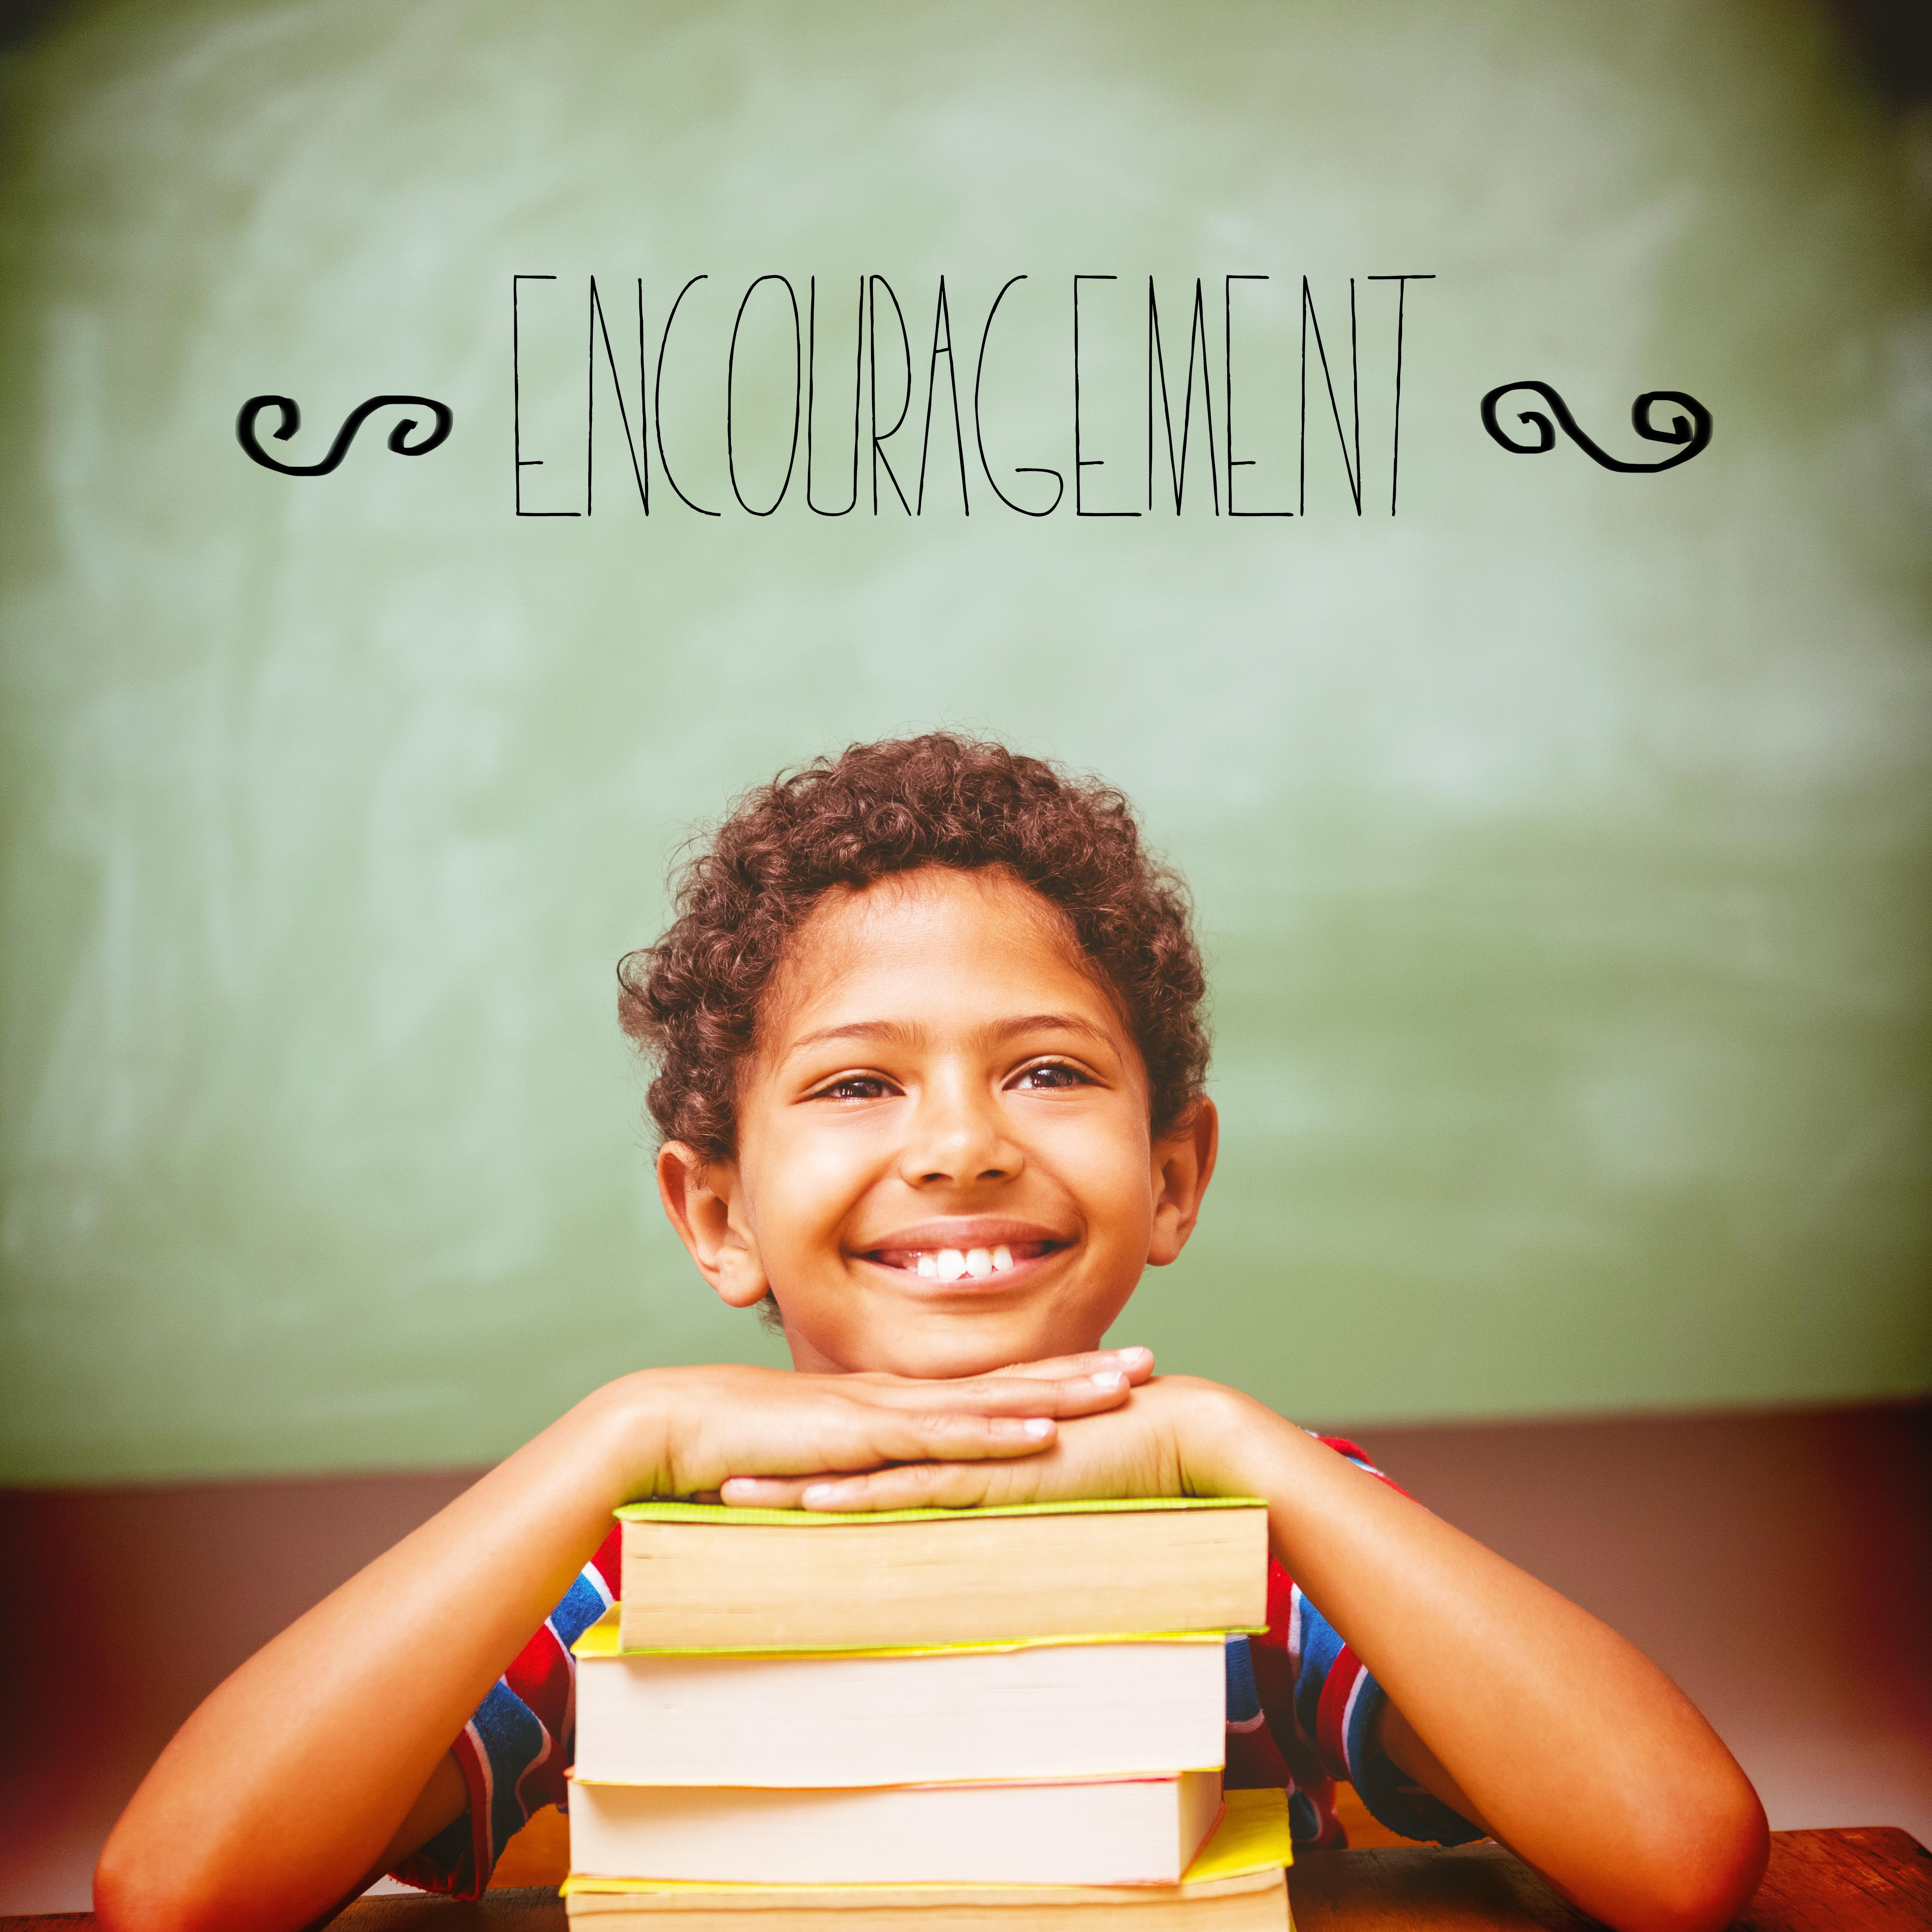 """""""Encouragement against little boy with stack of books in classroom"""" stock image"""